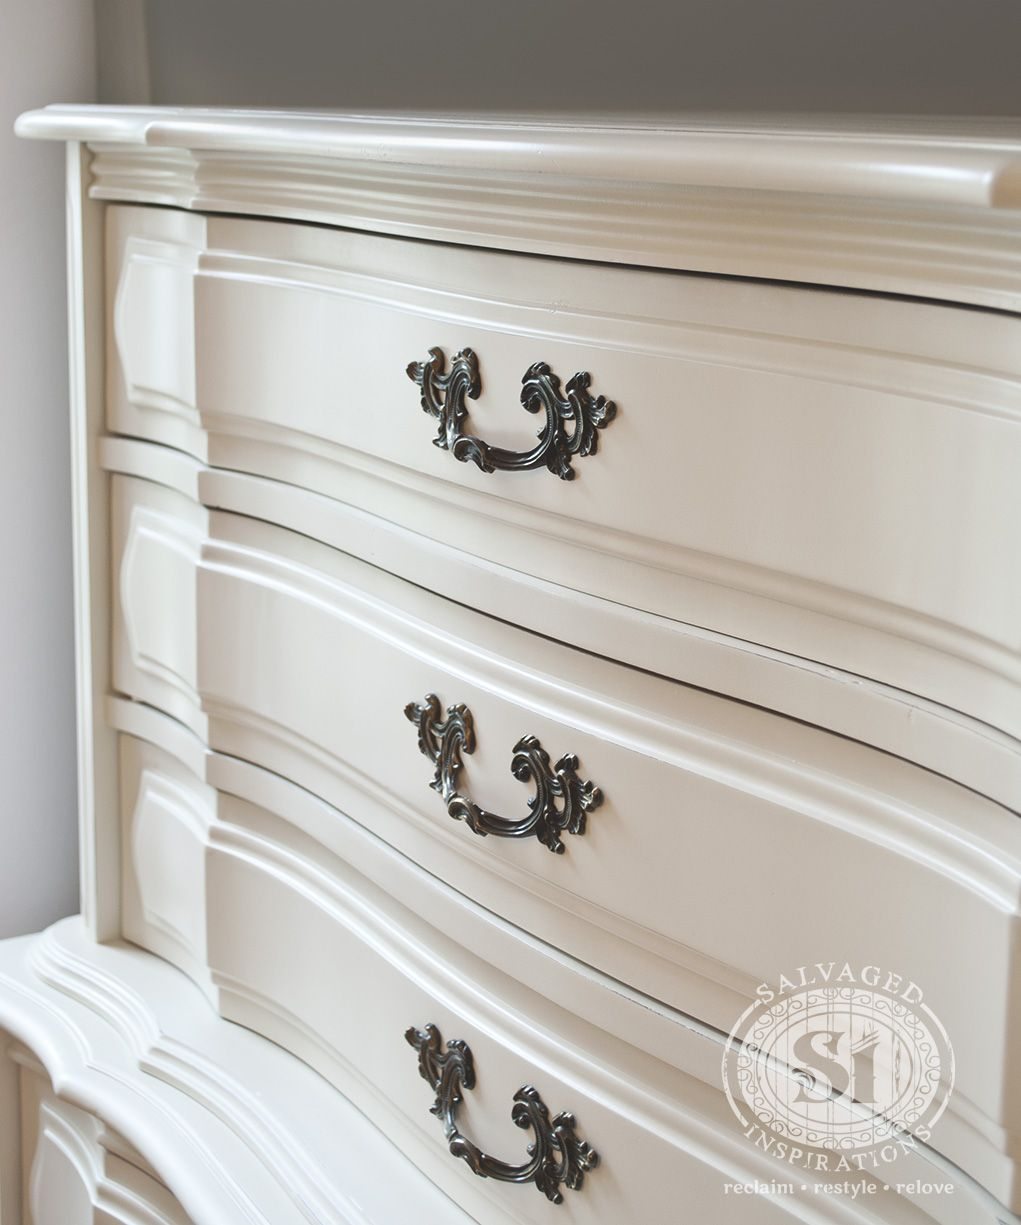 Clic French Dresser Restyled In Generalfinishes Antique White Milk Paint Provides An Immaculate Finish When Sprayed